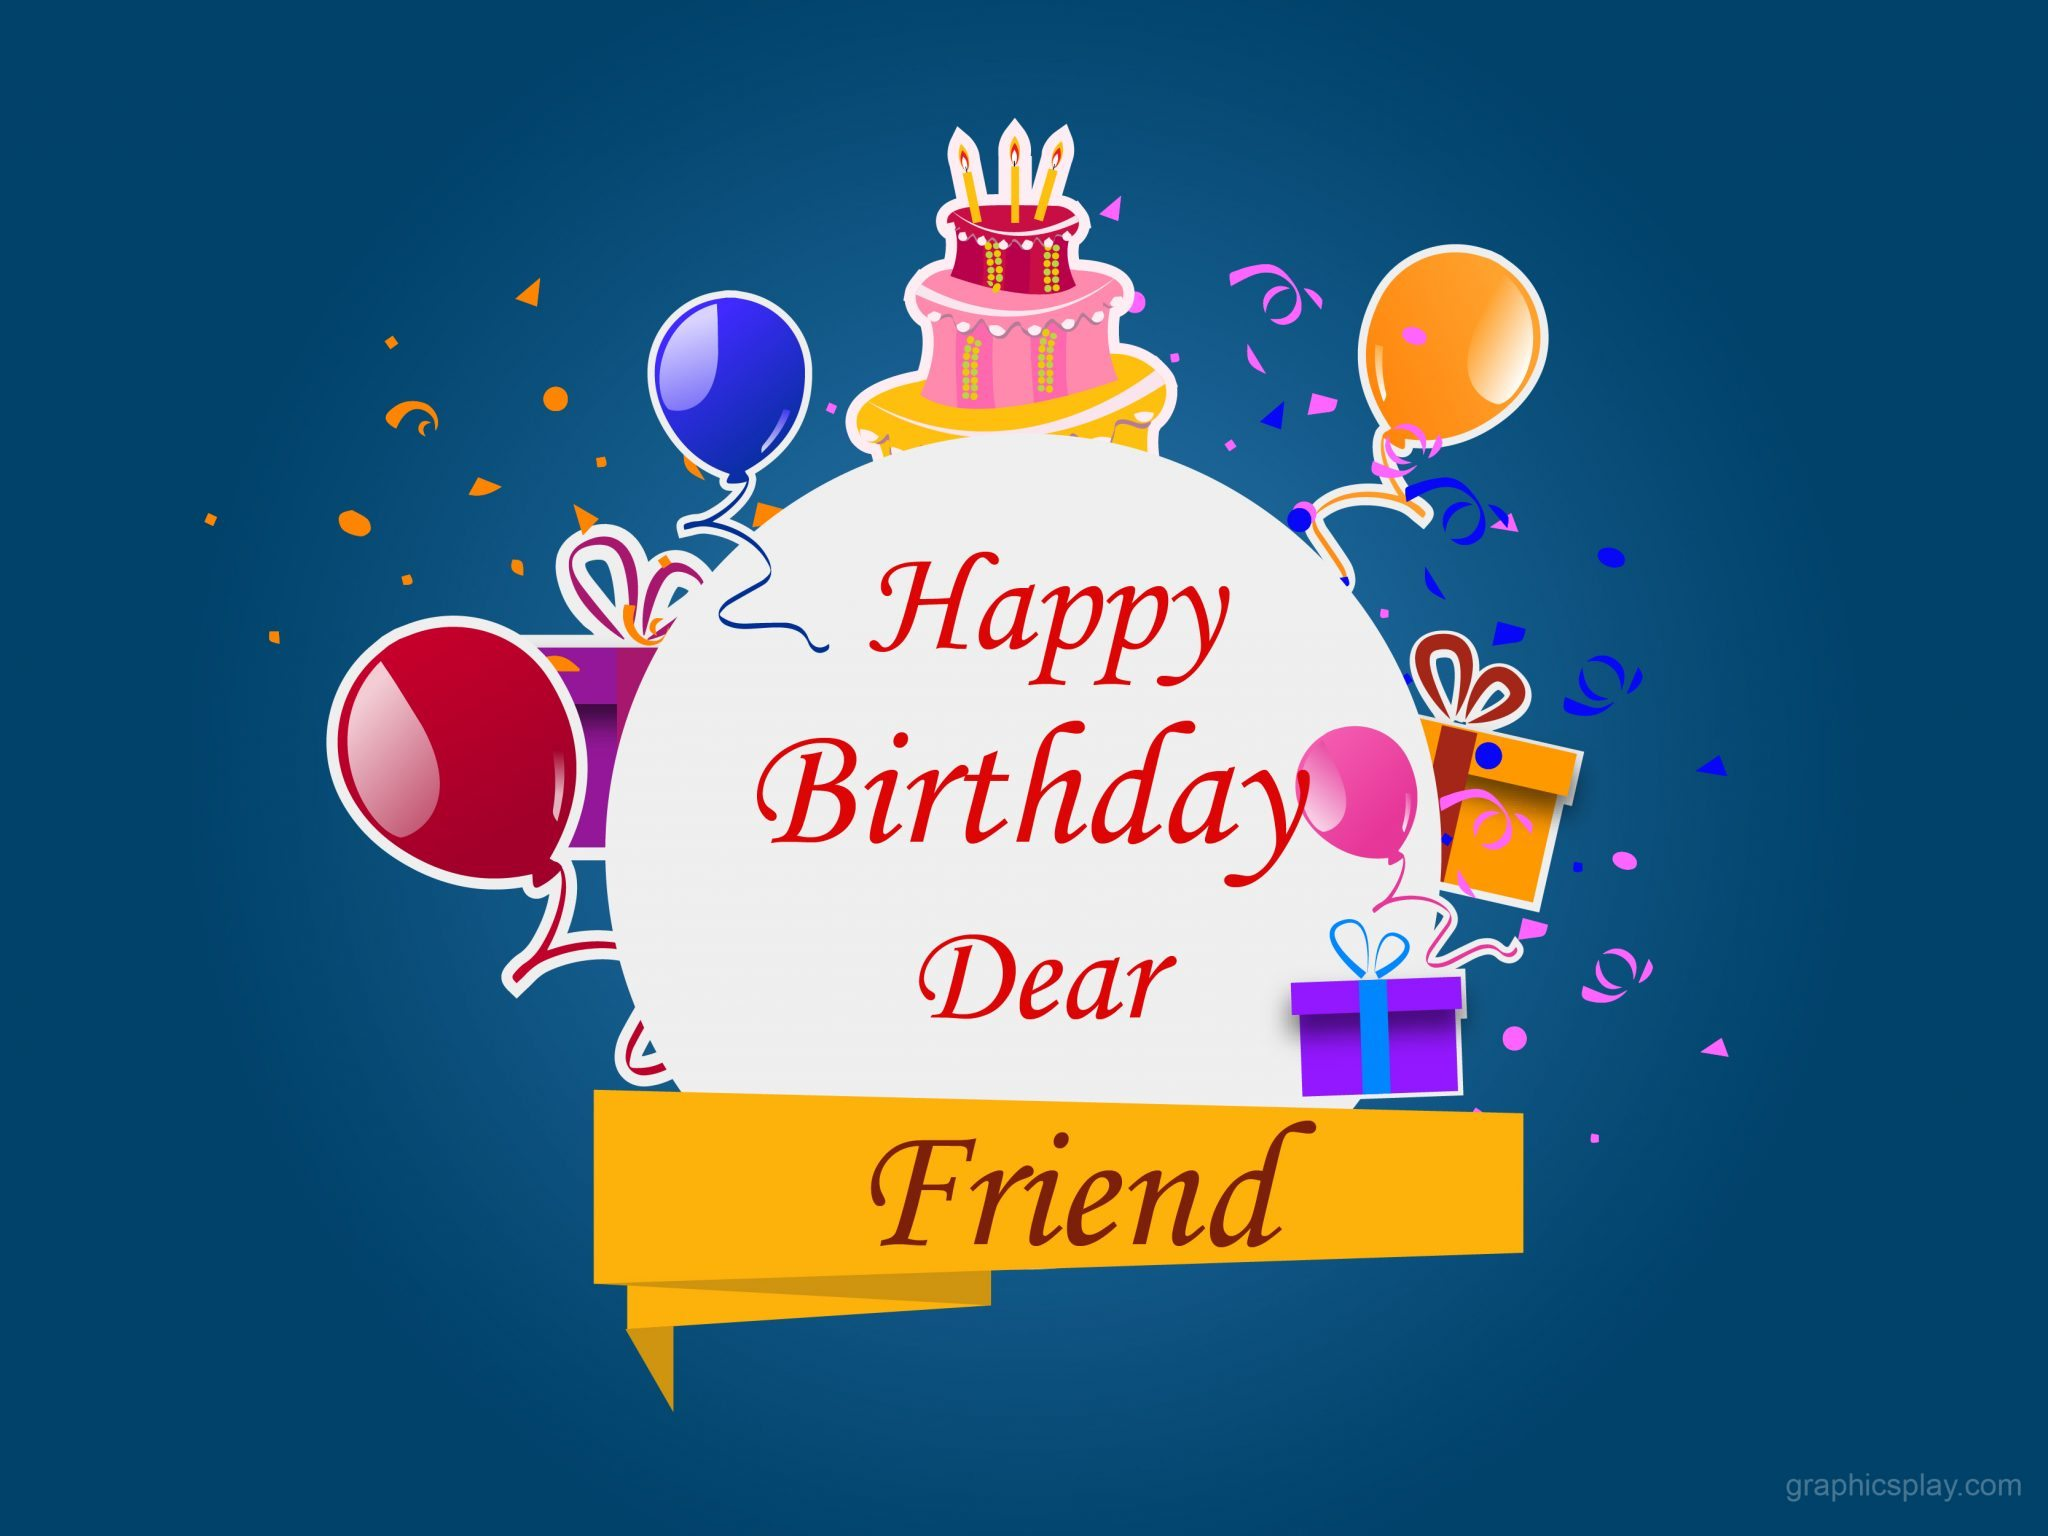 Birthdays are never complete until youve sent happy birthday wishes to a friend or to any other birthday gal or boy! These wishes will help your friends feel happy